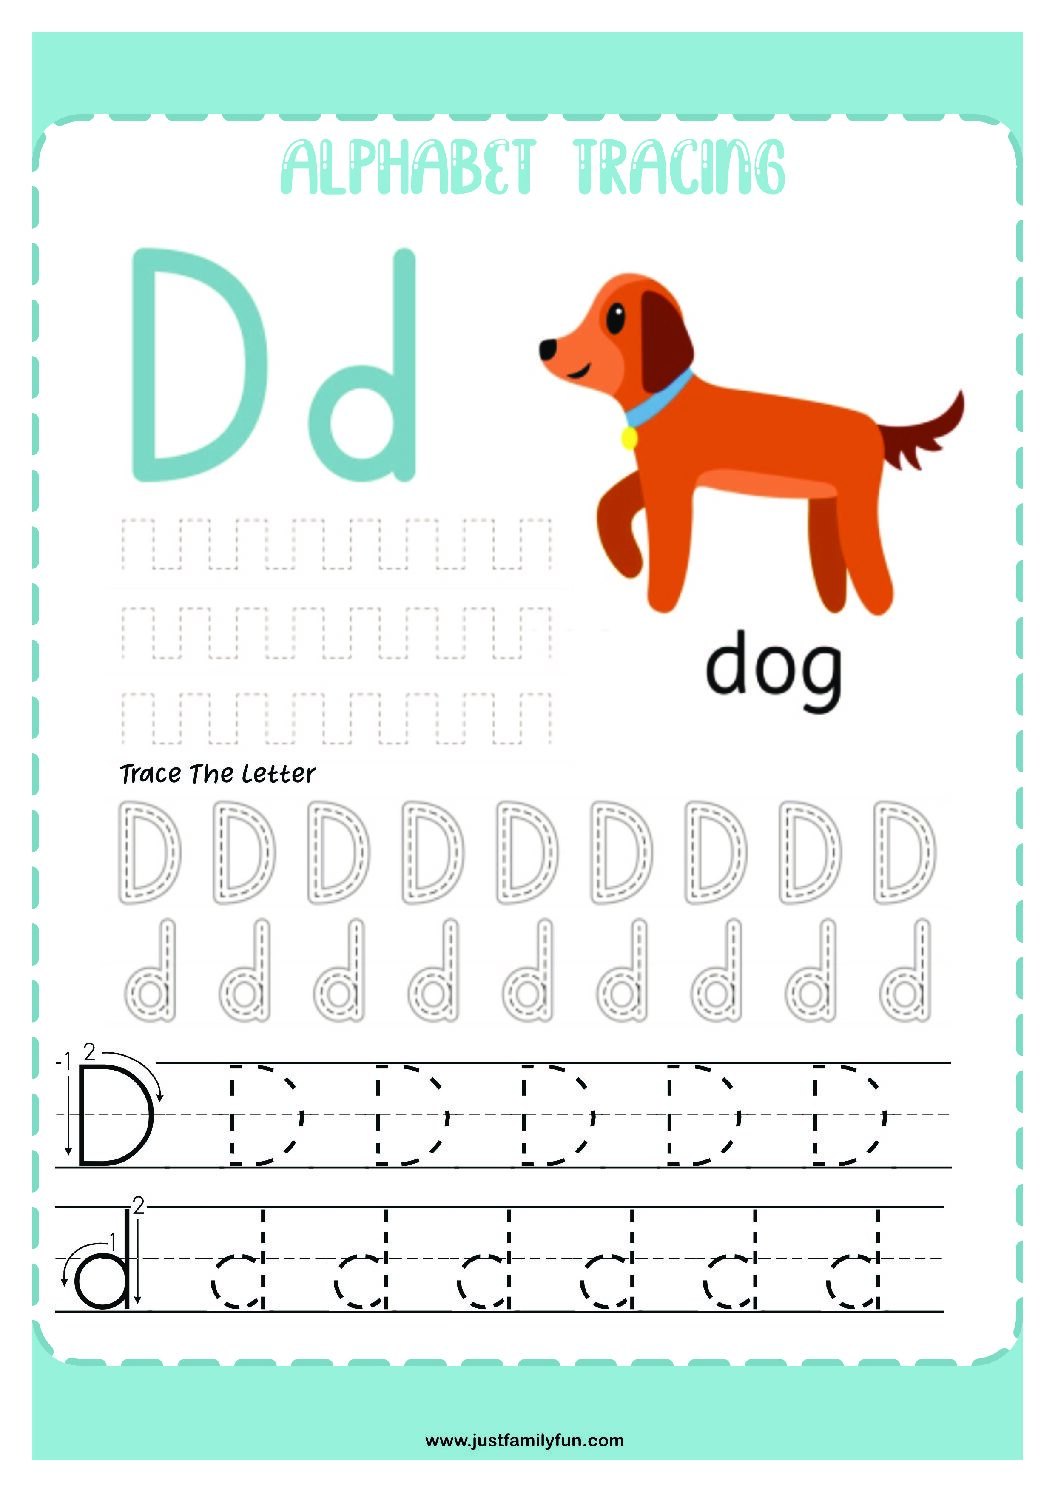 Alphabets_4-pdf Free Printable Trace The Alphabet Worksheets for Kids.